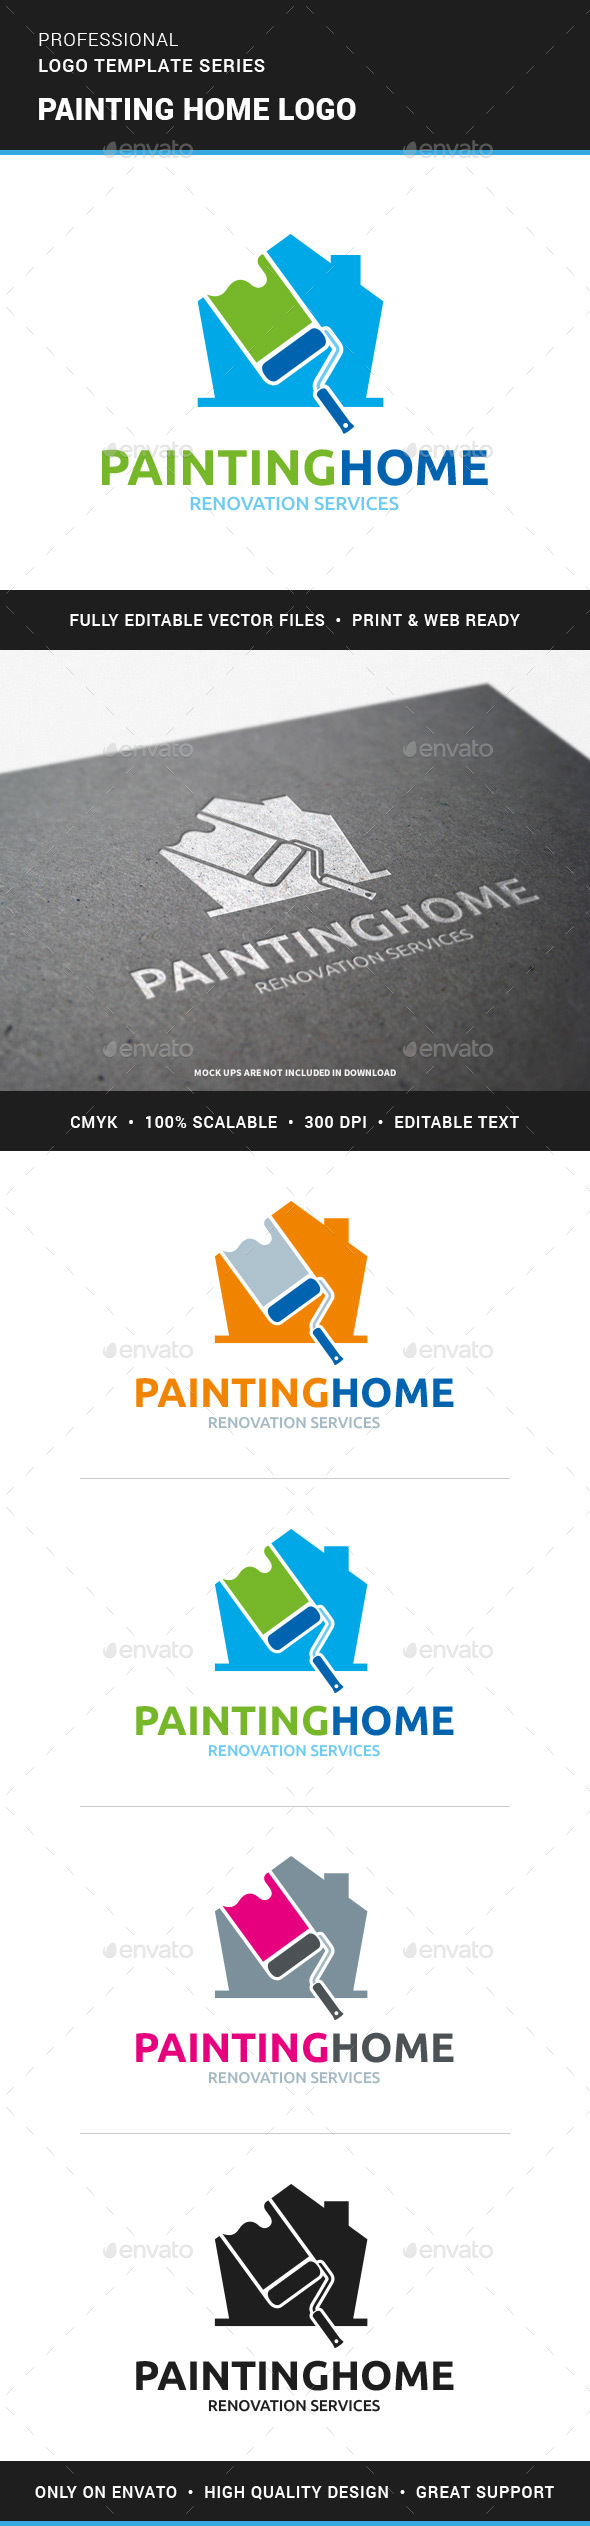 Painting Home Logo Template - Buildings Logo Templates